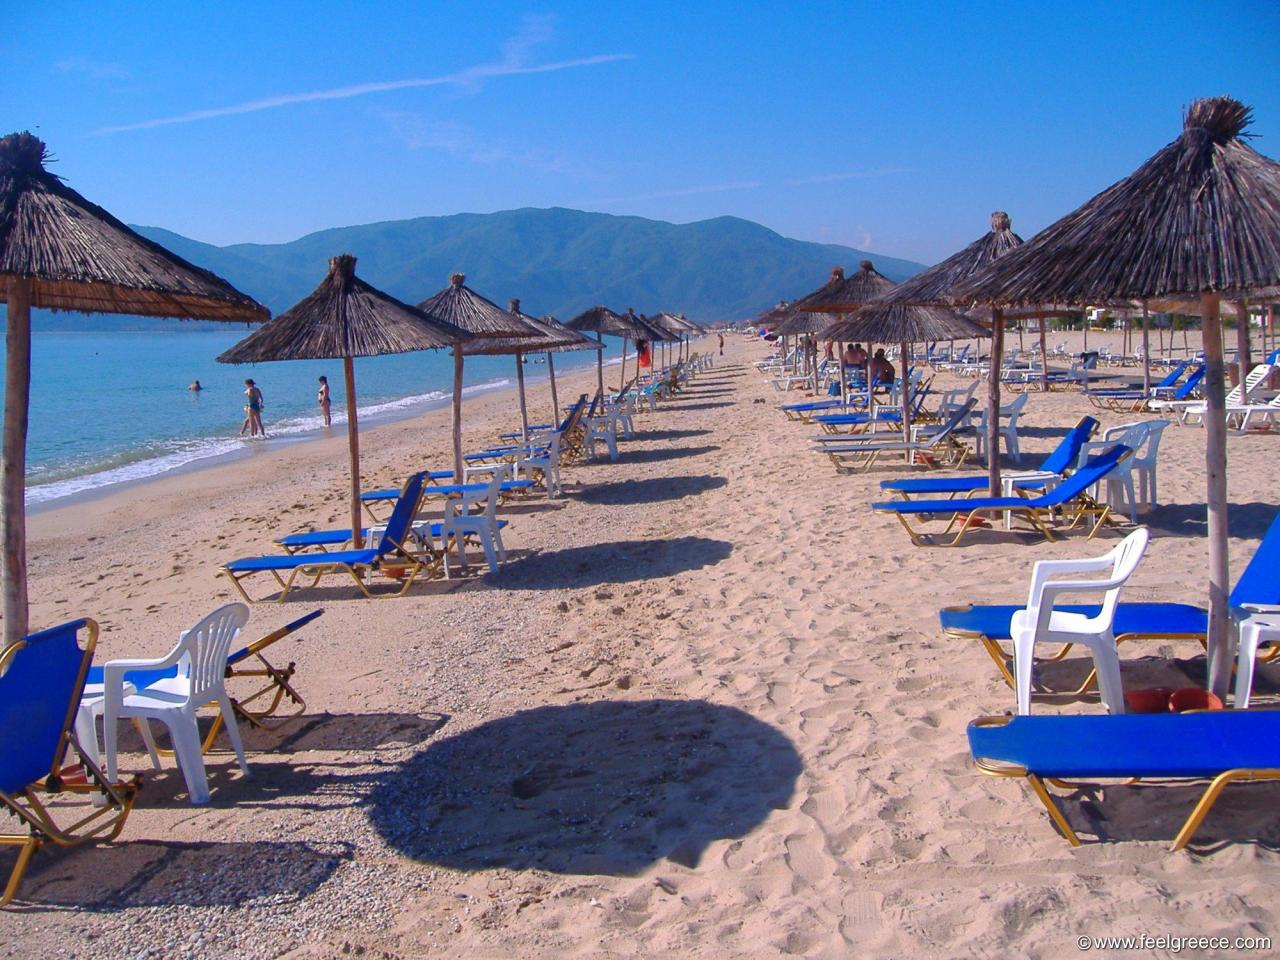 In thessaloniki region hotel and rooms to rent with wide beach